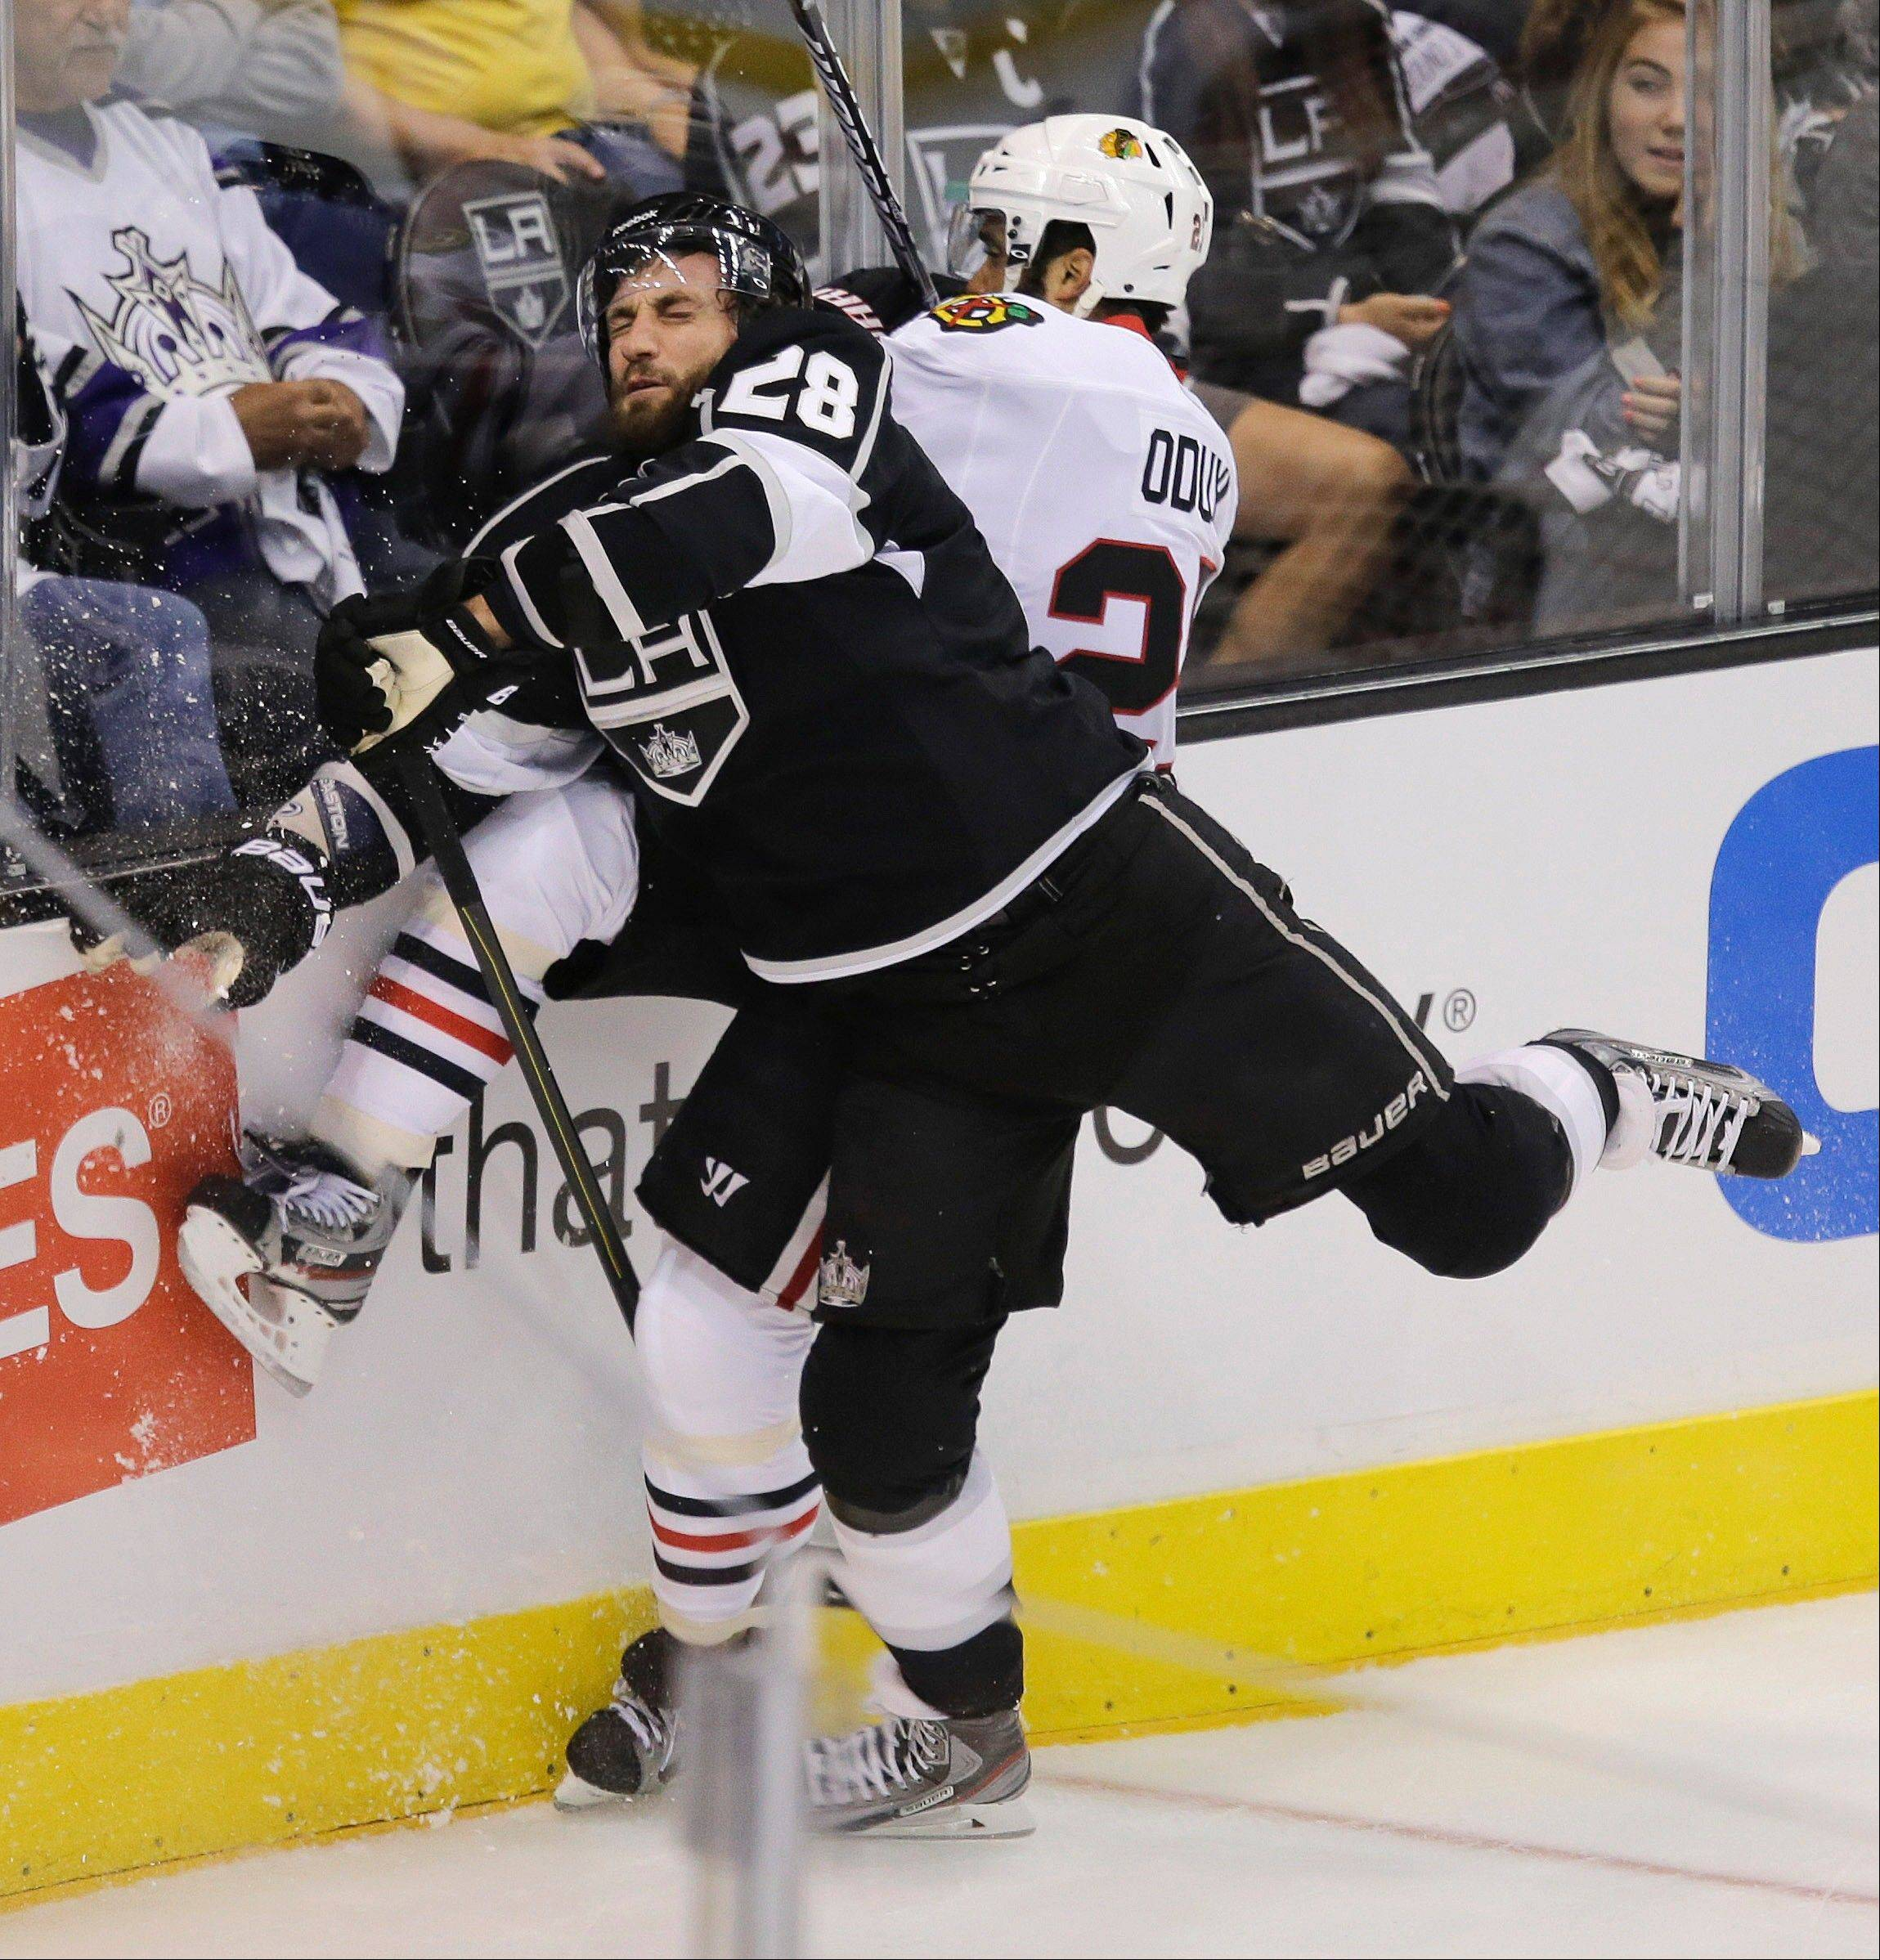 Los Angeles Kings center Jarret Stoll (28) collides with Chicago Blackhawks defenseman Johnny Oduya (27) during the first period of Game 3 of the NHL hockey Stanley Cup playoffs Western Conference finals, Tuesday, June 4, 2013, in Los Angeles.